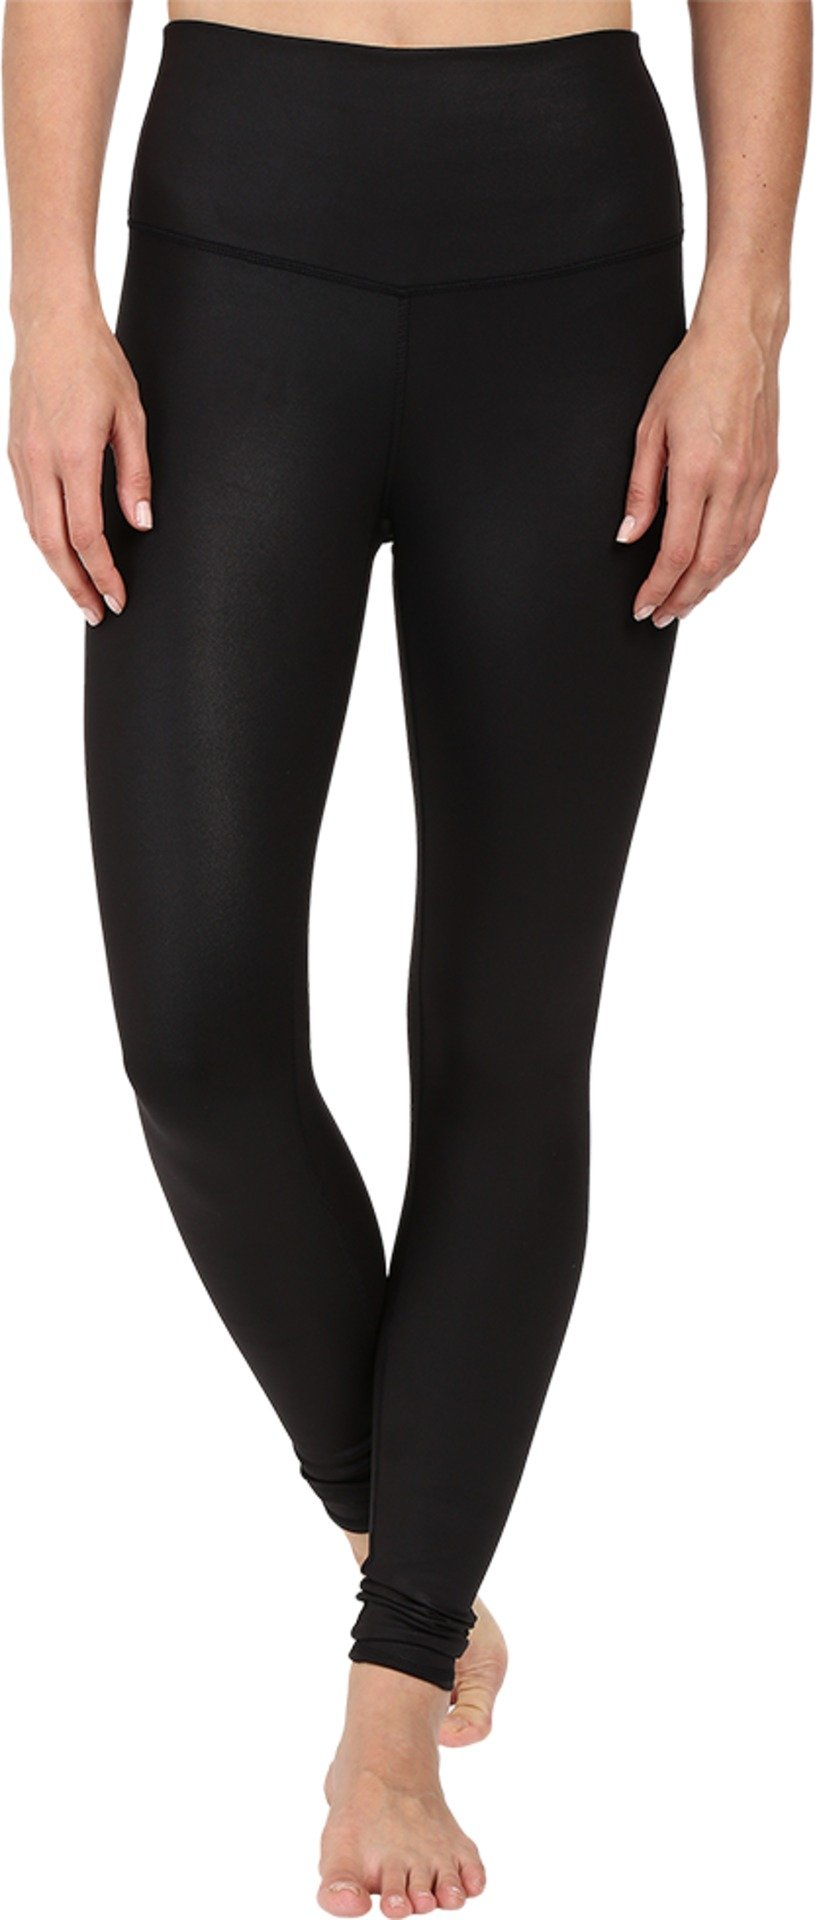 ALO Women's High Waist Airbrushed Leggings Black Glossy Large 28